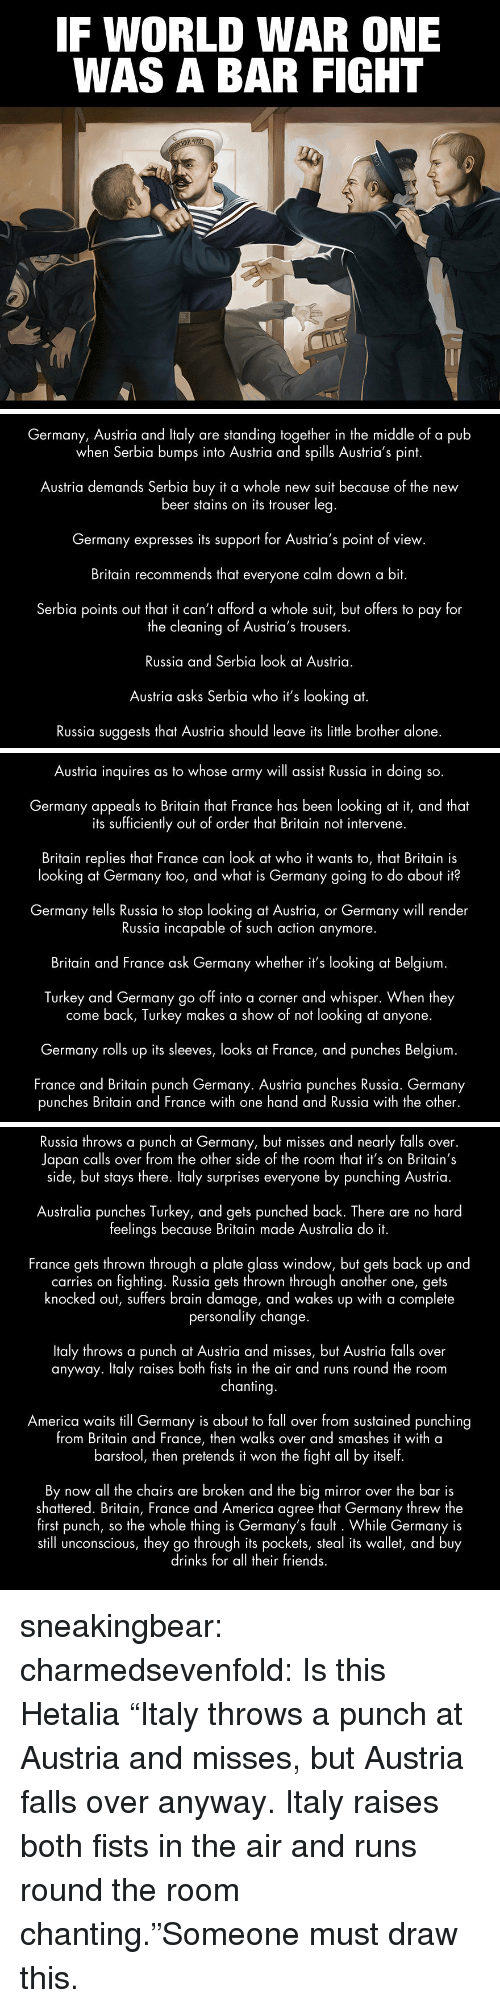 "fall over: IF WORLD WAR ONE  WAS A BAR FIGHT   Germany, Austria and ltaly are standing together in the middle of a pub  when Serbia bumps into Austria and spills Austria's pint.  Austria demands Serbia buy t a whole new suit because of the new  beer stains on its trouser leg  Germany expresses its support for Austria's point of view.  Britain recommends that everyone calm down a bit.  Serbia points out that it can't afford a whole suit, but offers to pay for  the cleaning of Austria's trousers.  Russia and Serbia look at Austria.  Austria asks Serbia who it's looking at.  Russia suggests that Austria should leave its little brother alone.   Austria inquires as to whose army will assist Russia in doing so.  Germany appeals to Britain that France has been looking at it, and that  its sufficiently out of order that Britain not intervene.  Britain replies that France can look at who it wants to, that Britain is  looking at Germany too, and what is Germany going to do about it?  Germany tells Russia to stop looking at Austria, or Germany will render  Russia incapable of such action anymore.  Britain and France ask Germany whether it's looking at Belgium  Turkey and Germany go off into a corner and whisper. When they  come back, Turkey makes a show of not looking at anyone.  Germany rolls up its sleeves, looks at France, and punches Belgium  France and Britain punch Germany. Austria punches Russia. Germany  punches Britain and France with one hand and Russia with the other.   Russia throws a punch at Germany, but misses and nearly falls over.  Japan calls over from the other side of the room that it's on Britain's  side, but stays there. Italy surprises everyone by punching Austria  Australia punches Turkey, and gets punched back. There are no hard  feelings because Britain made Australia do it  France gets thrown through a plate alass window, but gets back up and  carries on fighting. Russia gets thrown through another one, gets  knocked out, suffers brain damage, and wakes up with a complete  personality change  Italy throws a punch at Austria and misses, but Austria falls over  anyway. Italy raises both fists in the air and runs round the room  chanting  America waits till Germany is about to fall over from sustained punching  from Britain and France, then walks over and smashes it with a  barstool, then pretends it won the fight all by itself  By now all the chairs are broken and the big mirror over the bar is  shattered. Britain, France and America agree that Germany threw the  first punch, so the whole thing is Germany's fault . While Germany is  still unconscious, they go through its pockets, steal its wallet, and buy  drinks for all their friends sneakingbear:  charmedsevenfold:  Is this Hetalia  ""Italy throws a punch at Austria and misses, but Austria falls over anyway. Italy raises both fists in the air and runs round the room chanting.""Someone must draw this."